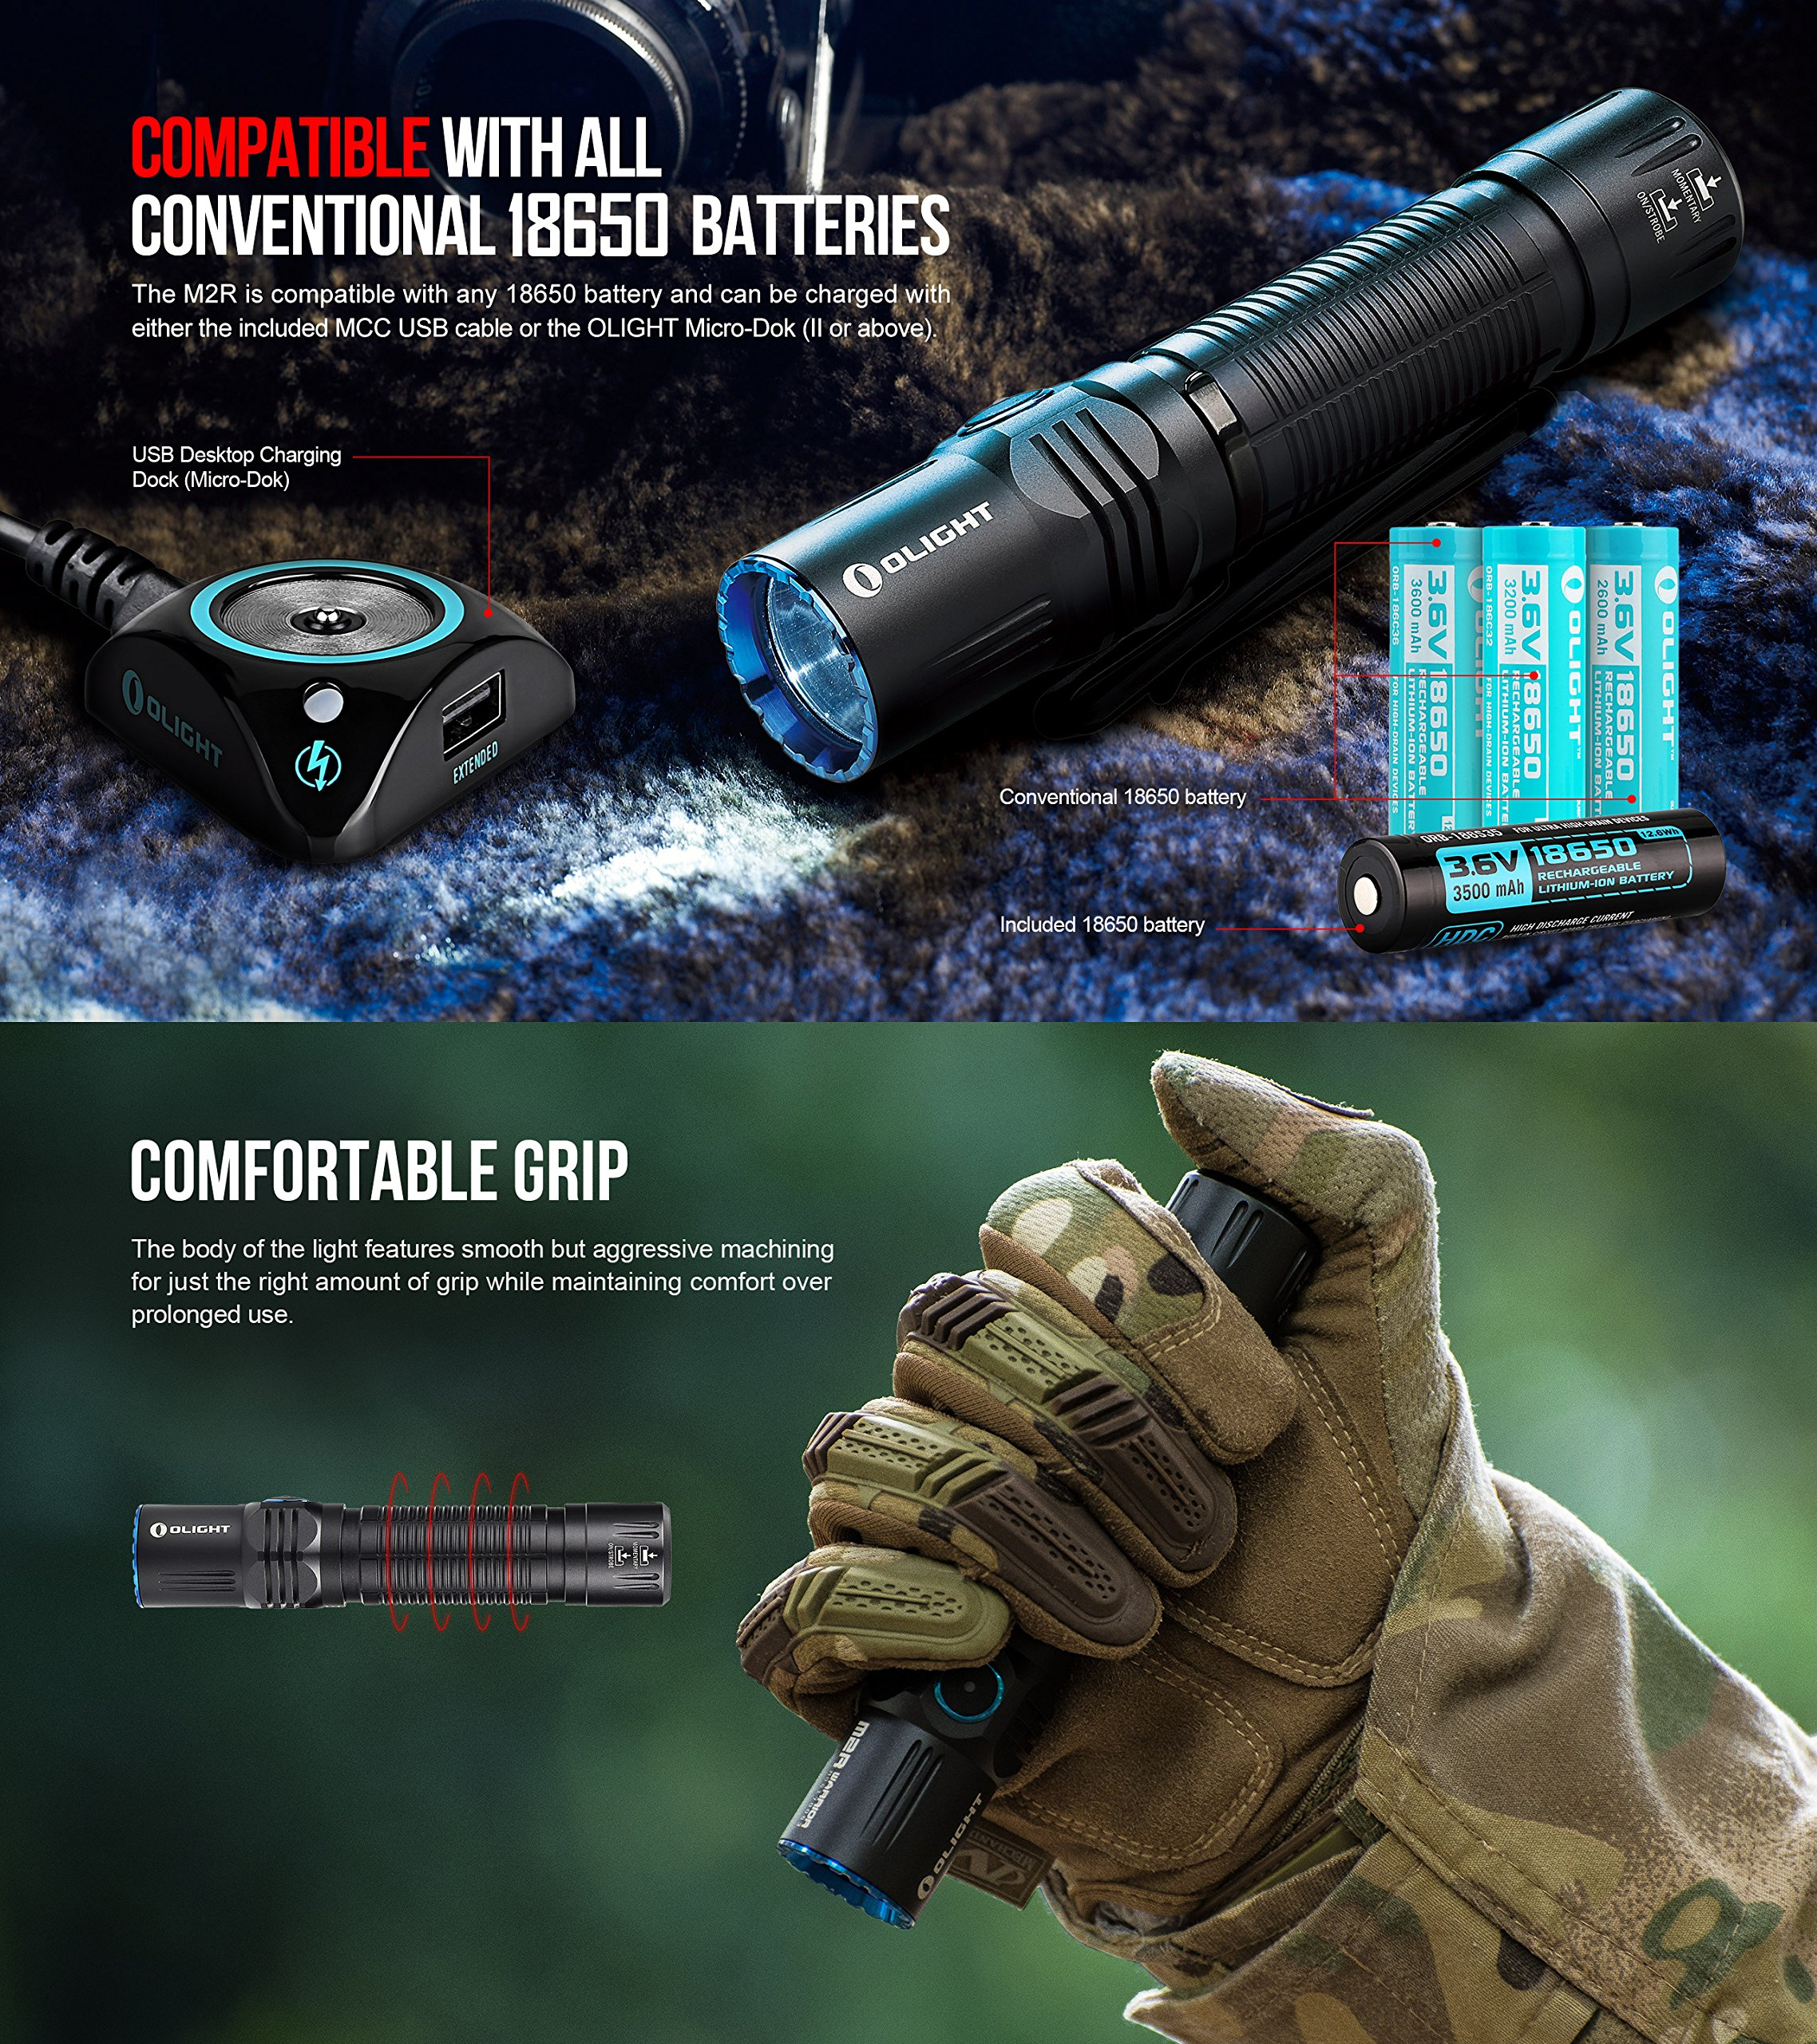 SKYBEN Olight M2R 1500 Lumen Cree XHP35 HD LED USB Magnetic Rechargeable Dual switches Tactical Flashlight,with Magnetic Charging Cable,Customized 18650 Battery Accessory (Cool White) by SKYBEN (Image #5)